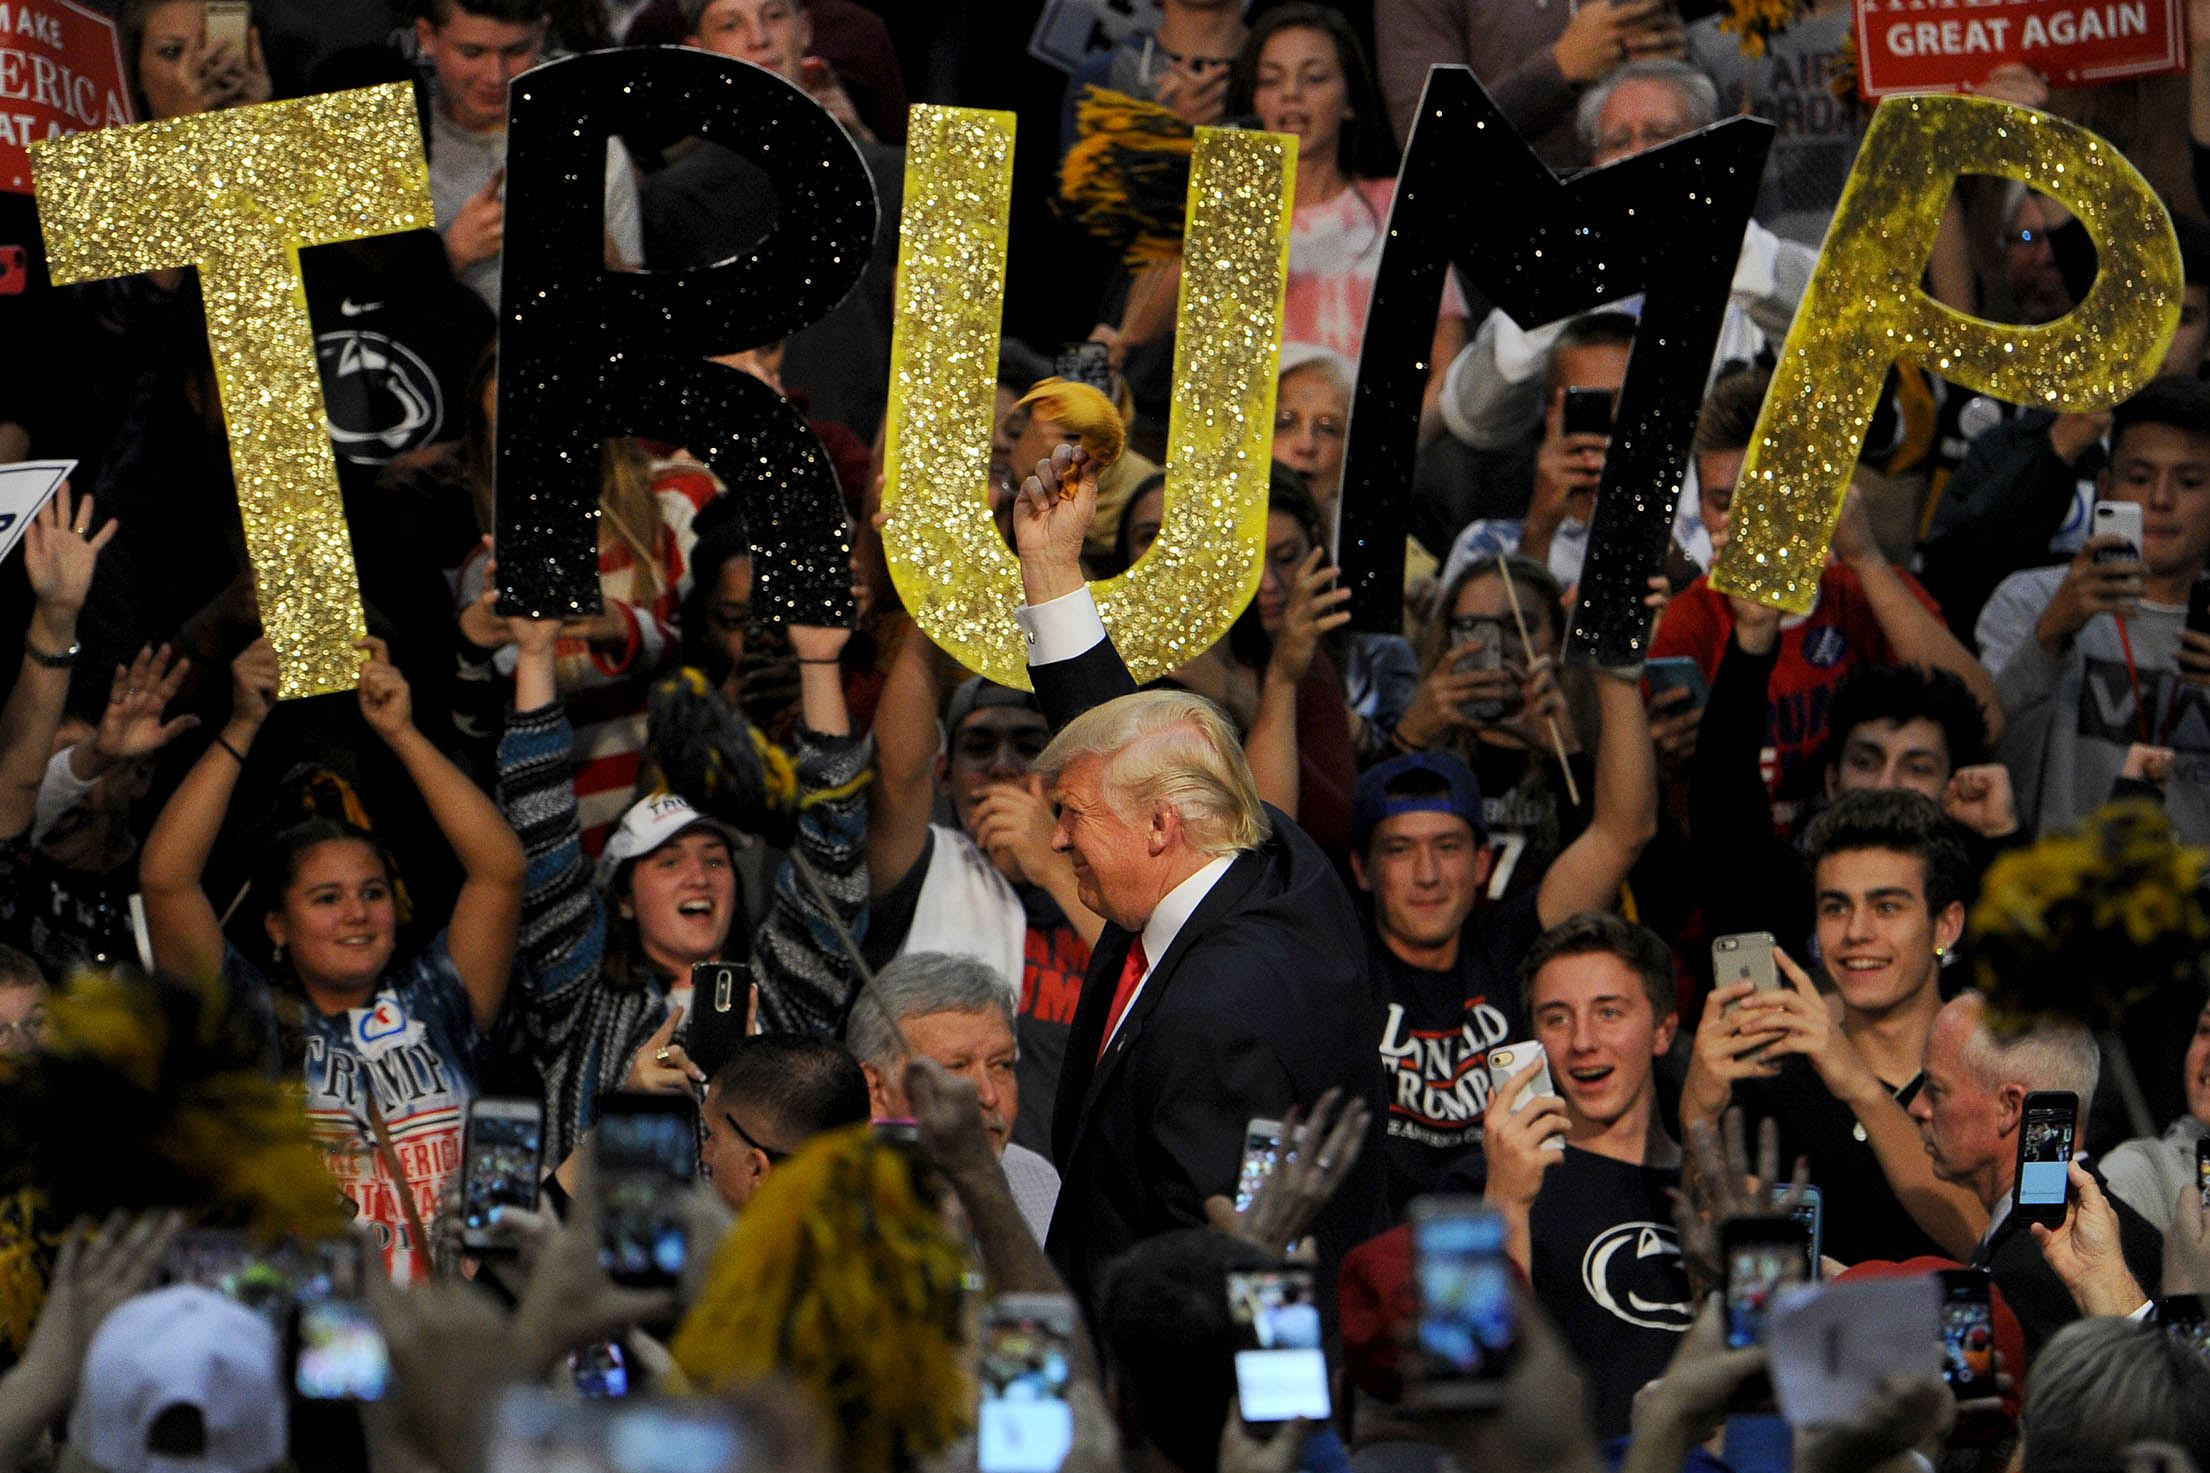 20161010MWHtrumpLocal10-1 Donald Trump waves the Terrible Towel upon entering a campaign event at Ambridge High School on Monday.